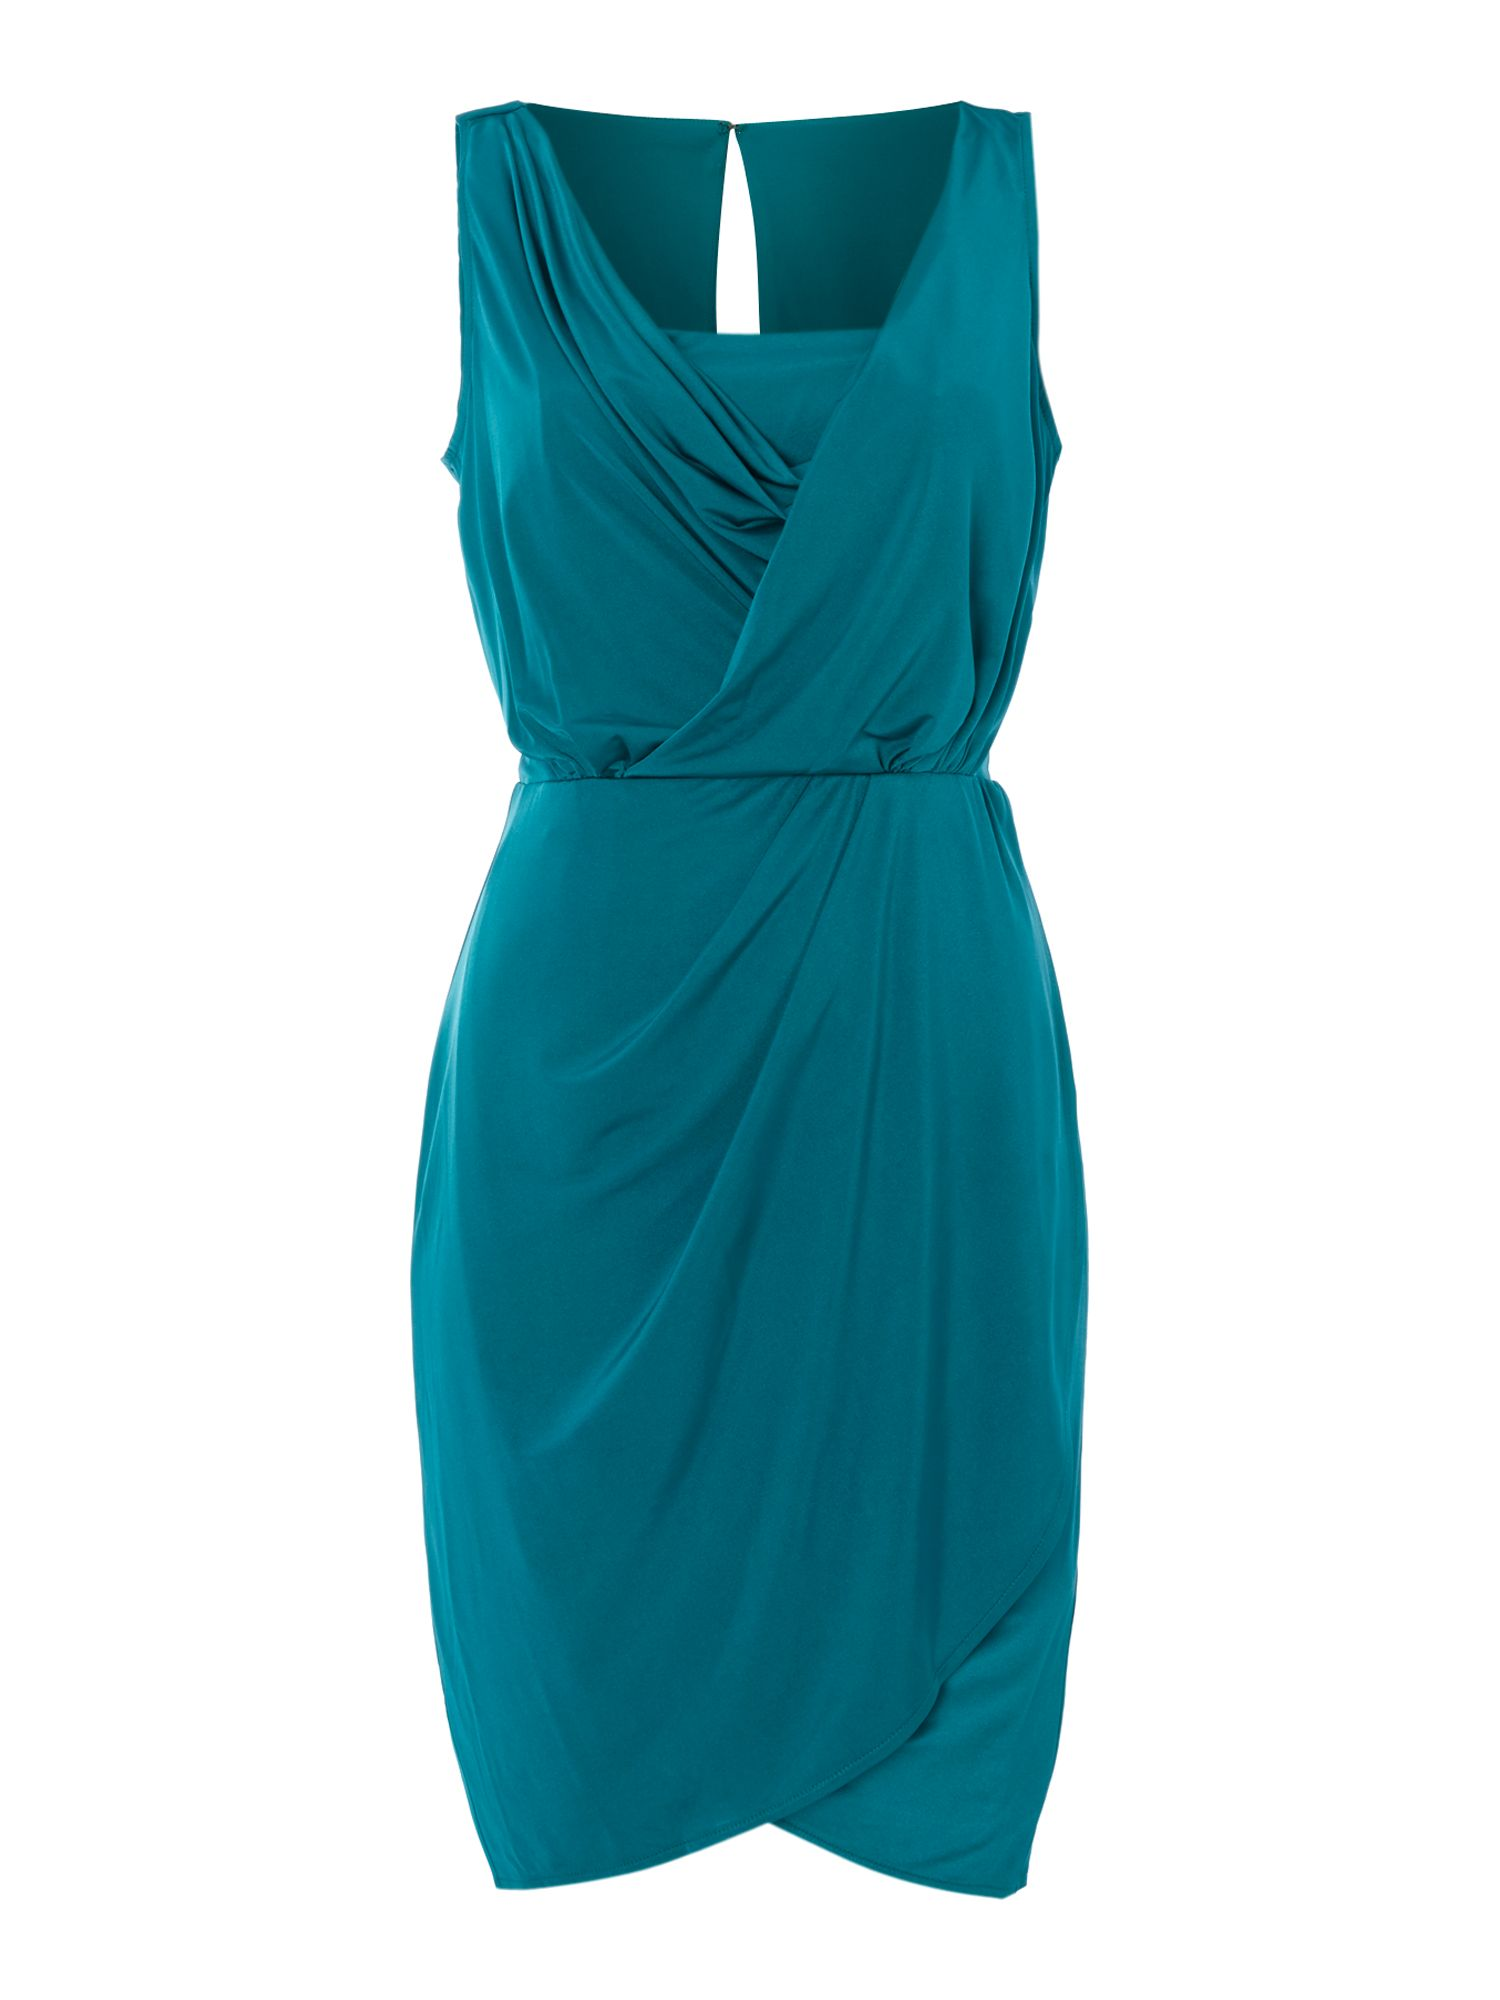 Grecian drape dress